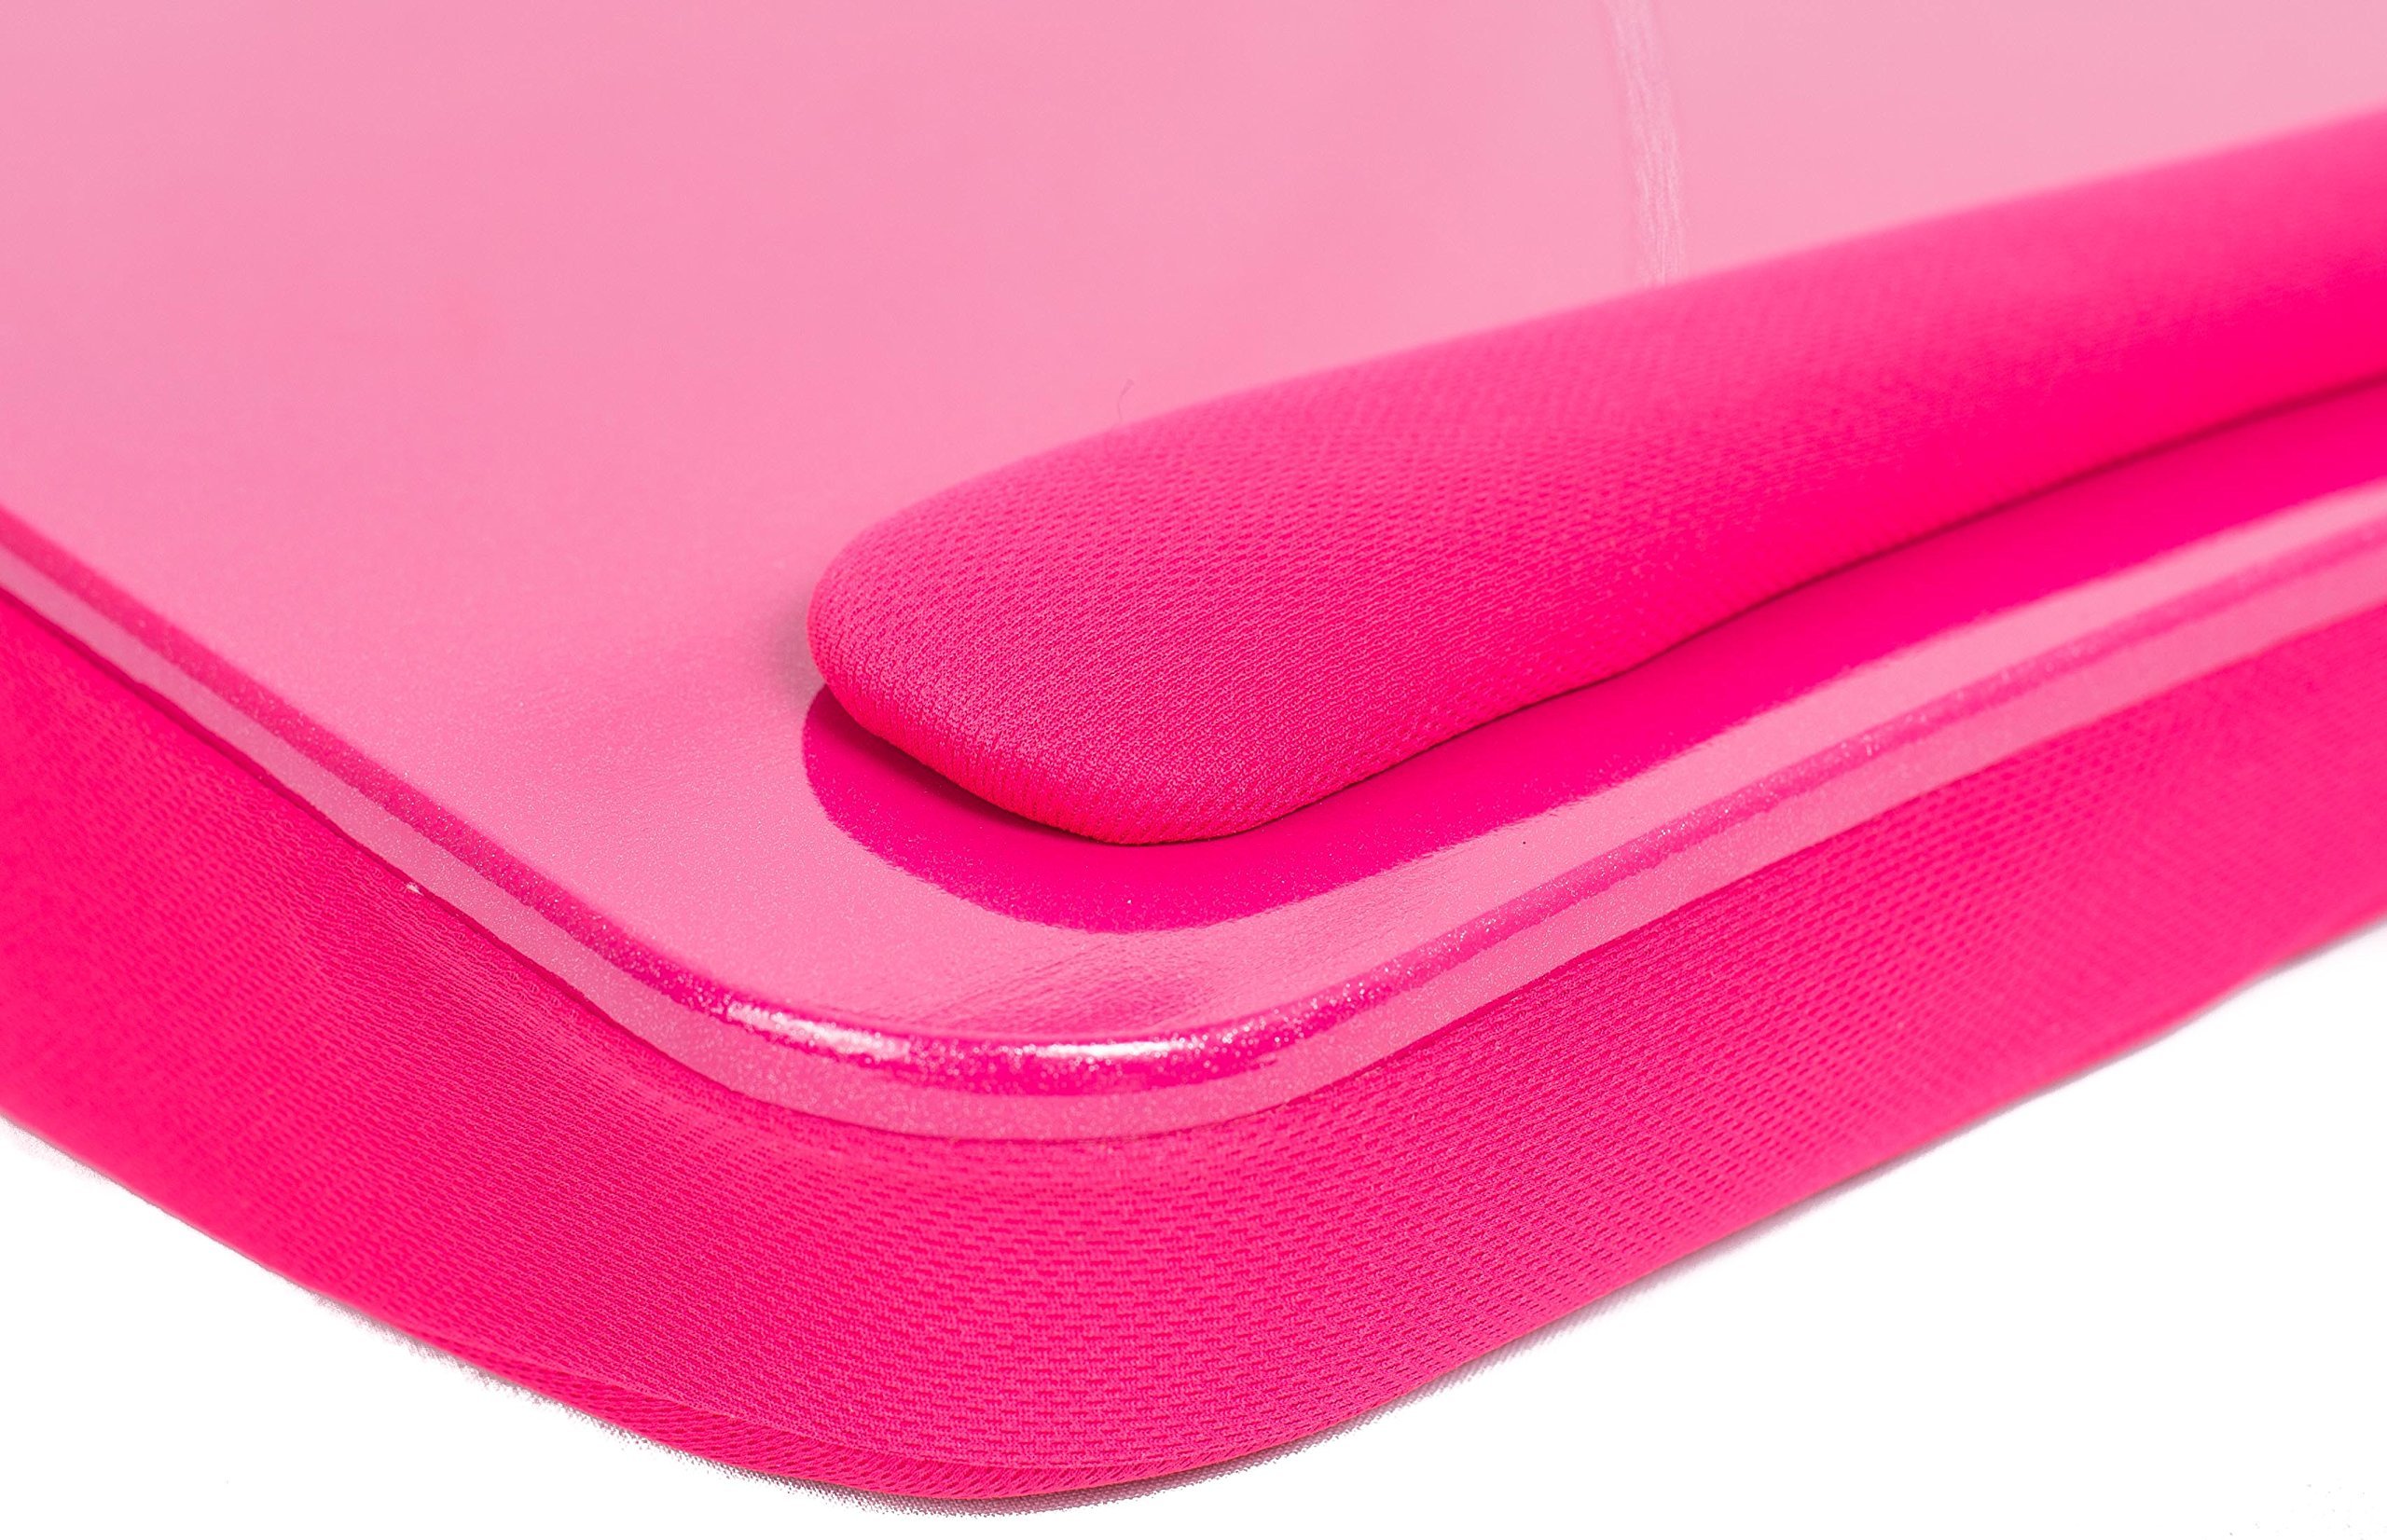 Sofia + Sam Lap Desk with USB Light (Pink)   Memory Foam Cushion   Supports Laptops Up To 17 Inches by Sofia + Sam (Image #3)